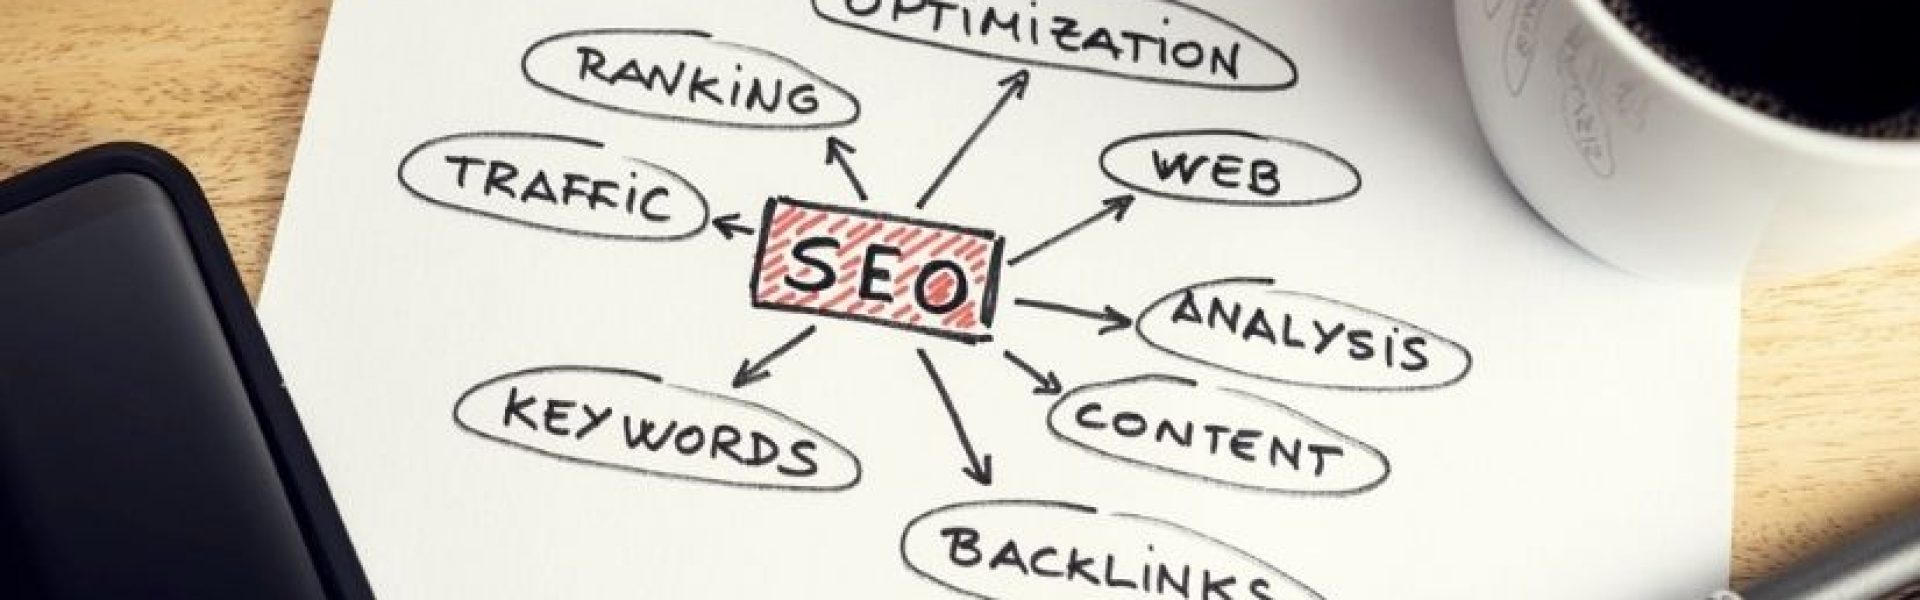 sea-tips-what-are-long-tailed-keywords